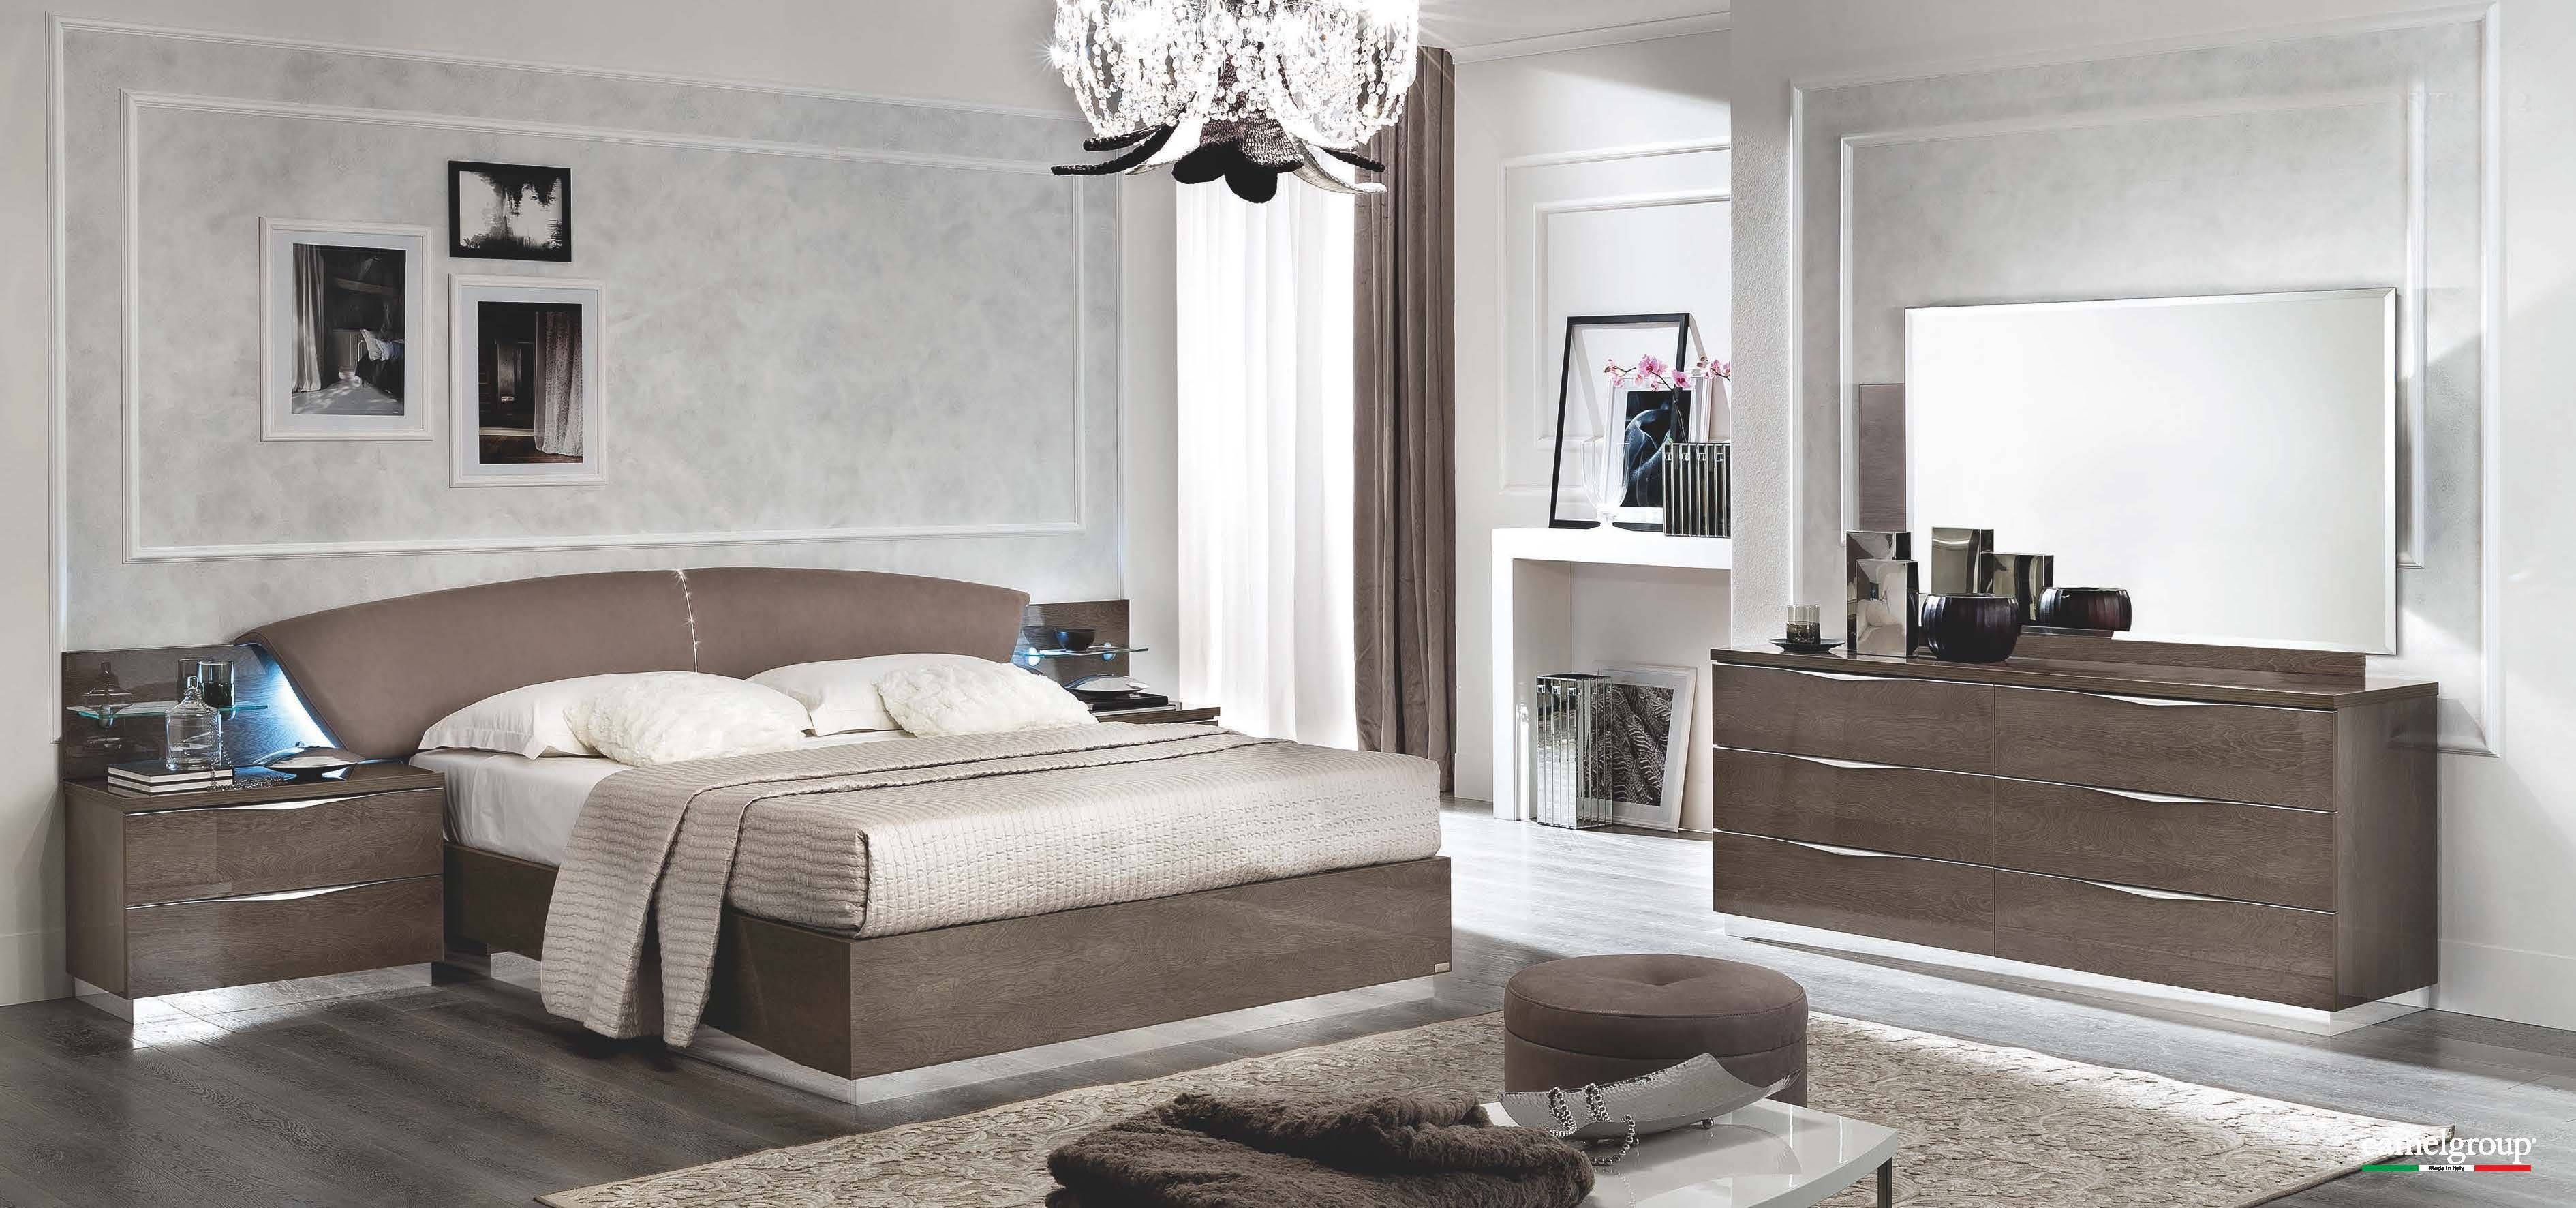 Made In Italy Quality Design Bedroom Furniture Luxurious